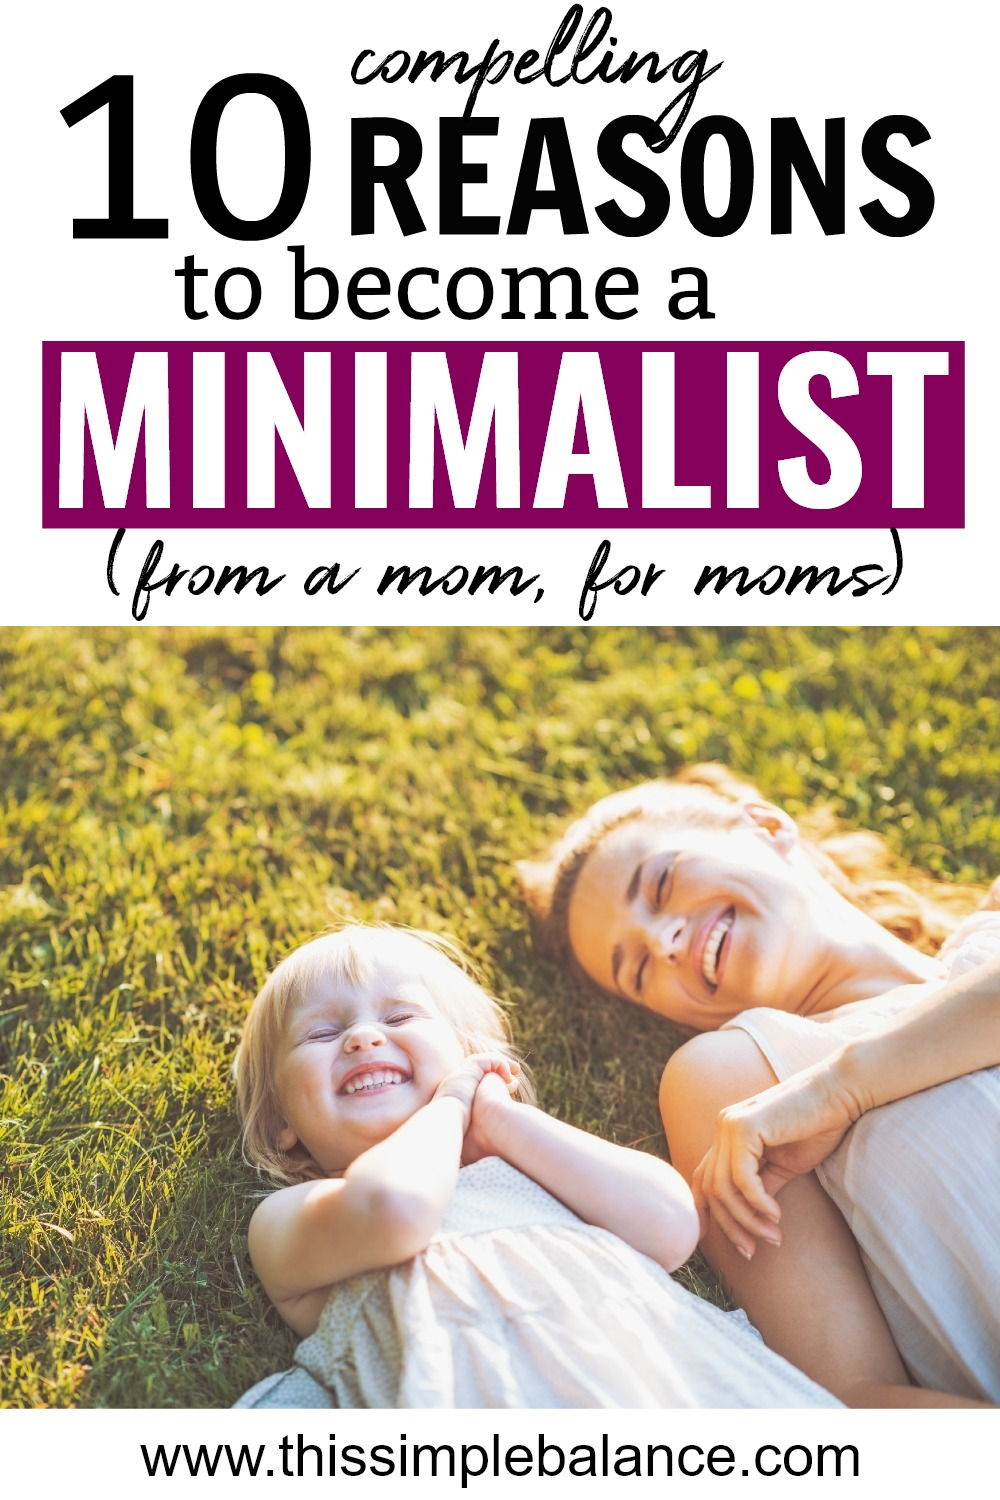 Minimalism literally changed my mom life, and it can change yours, too. Motherhood can be overwhelming and exhausting, but often moms suffer from extra stress, stress caused by cluttered homes and cluttered schedules. If these 10 reasons to become a minimalist don't convince you, I don't know what will!